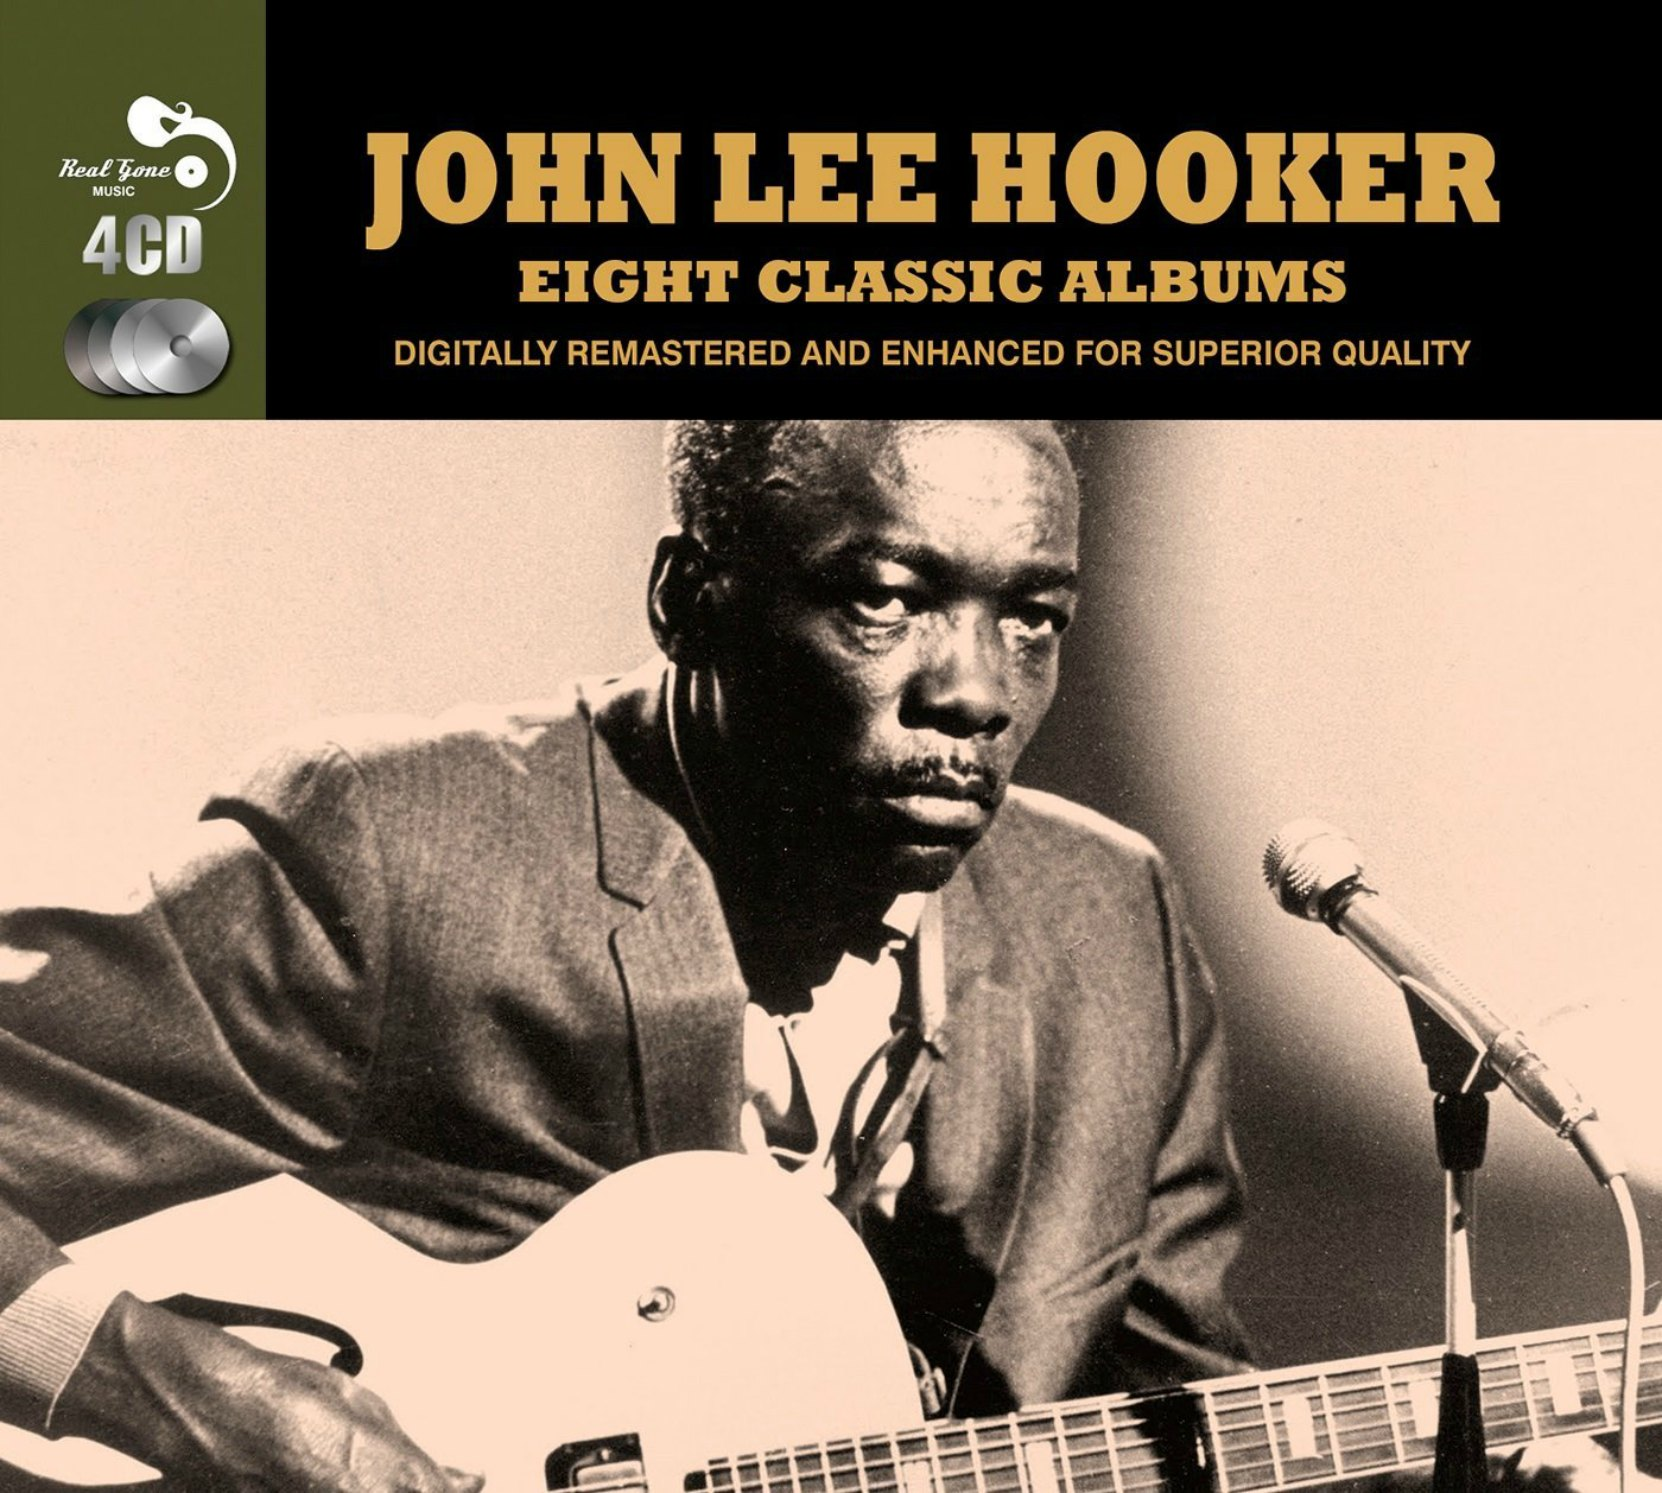 CD cover, John Lee Hooker, Eight Classic Albums, a 4 CD set released by Real Gone Music Company